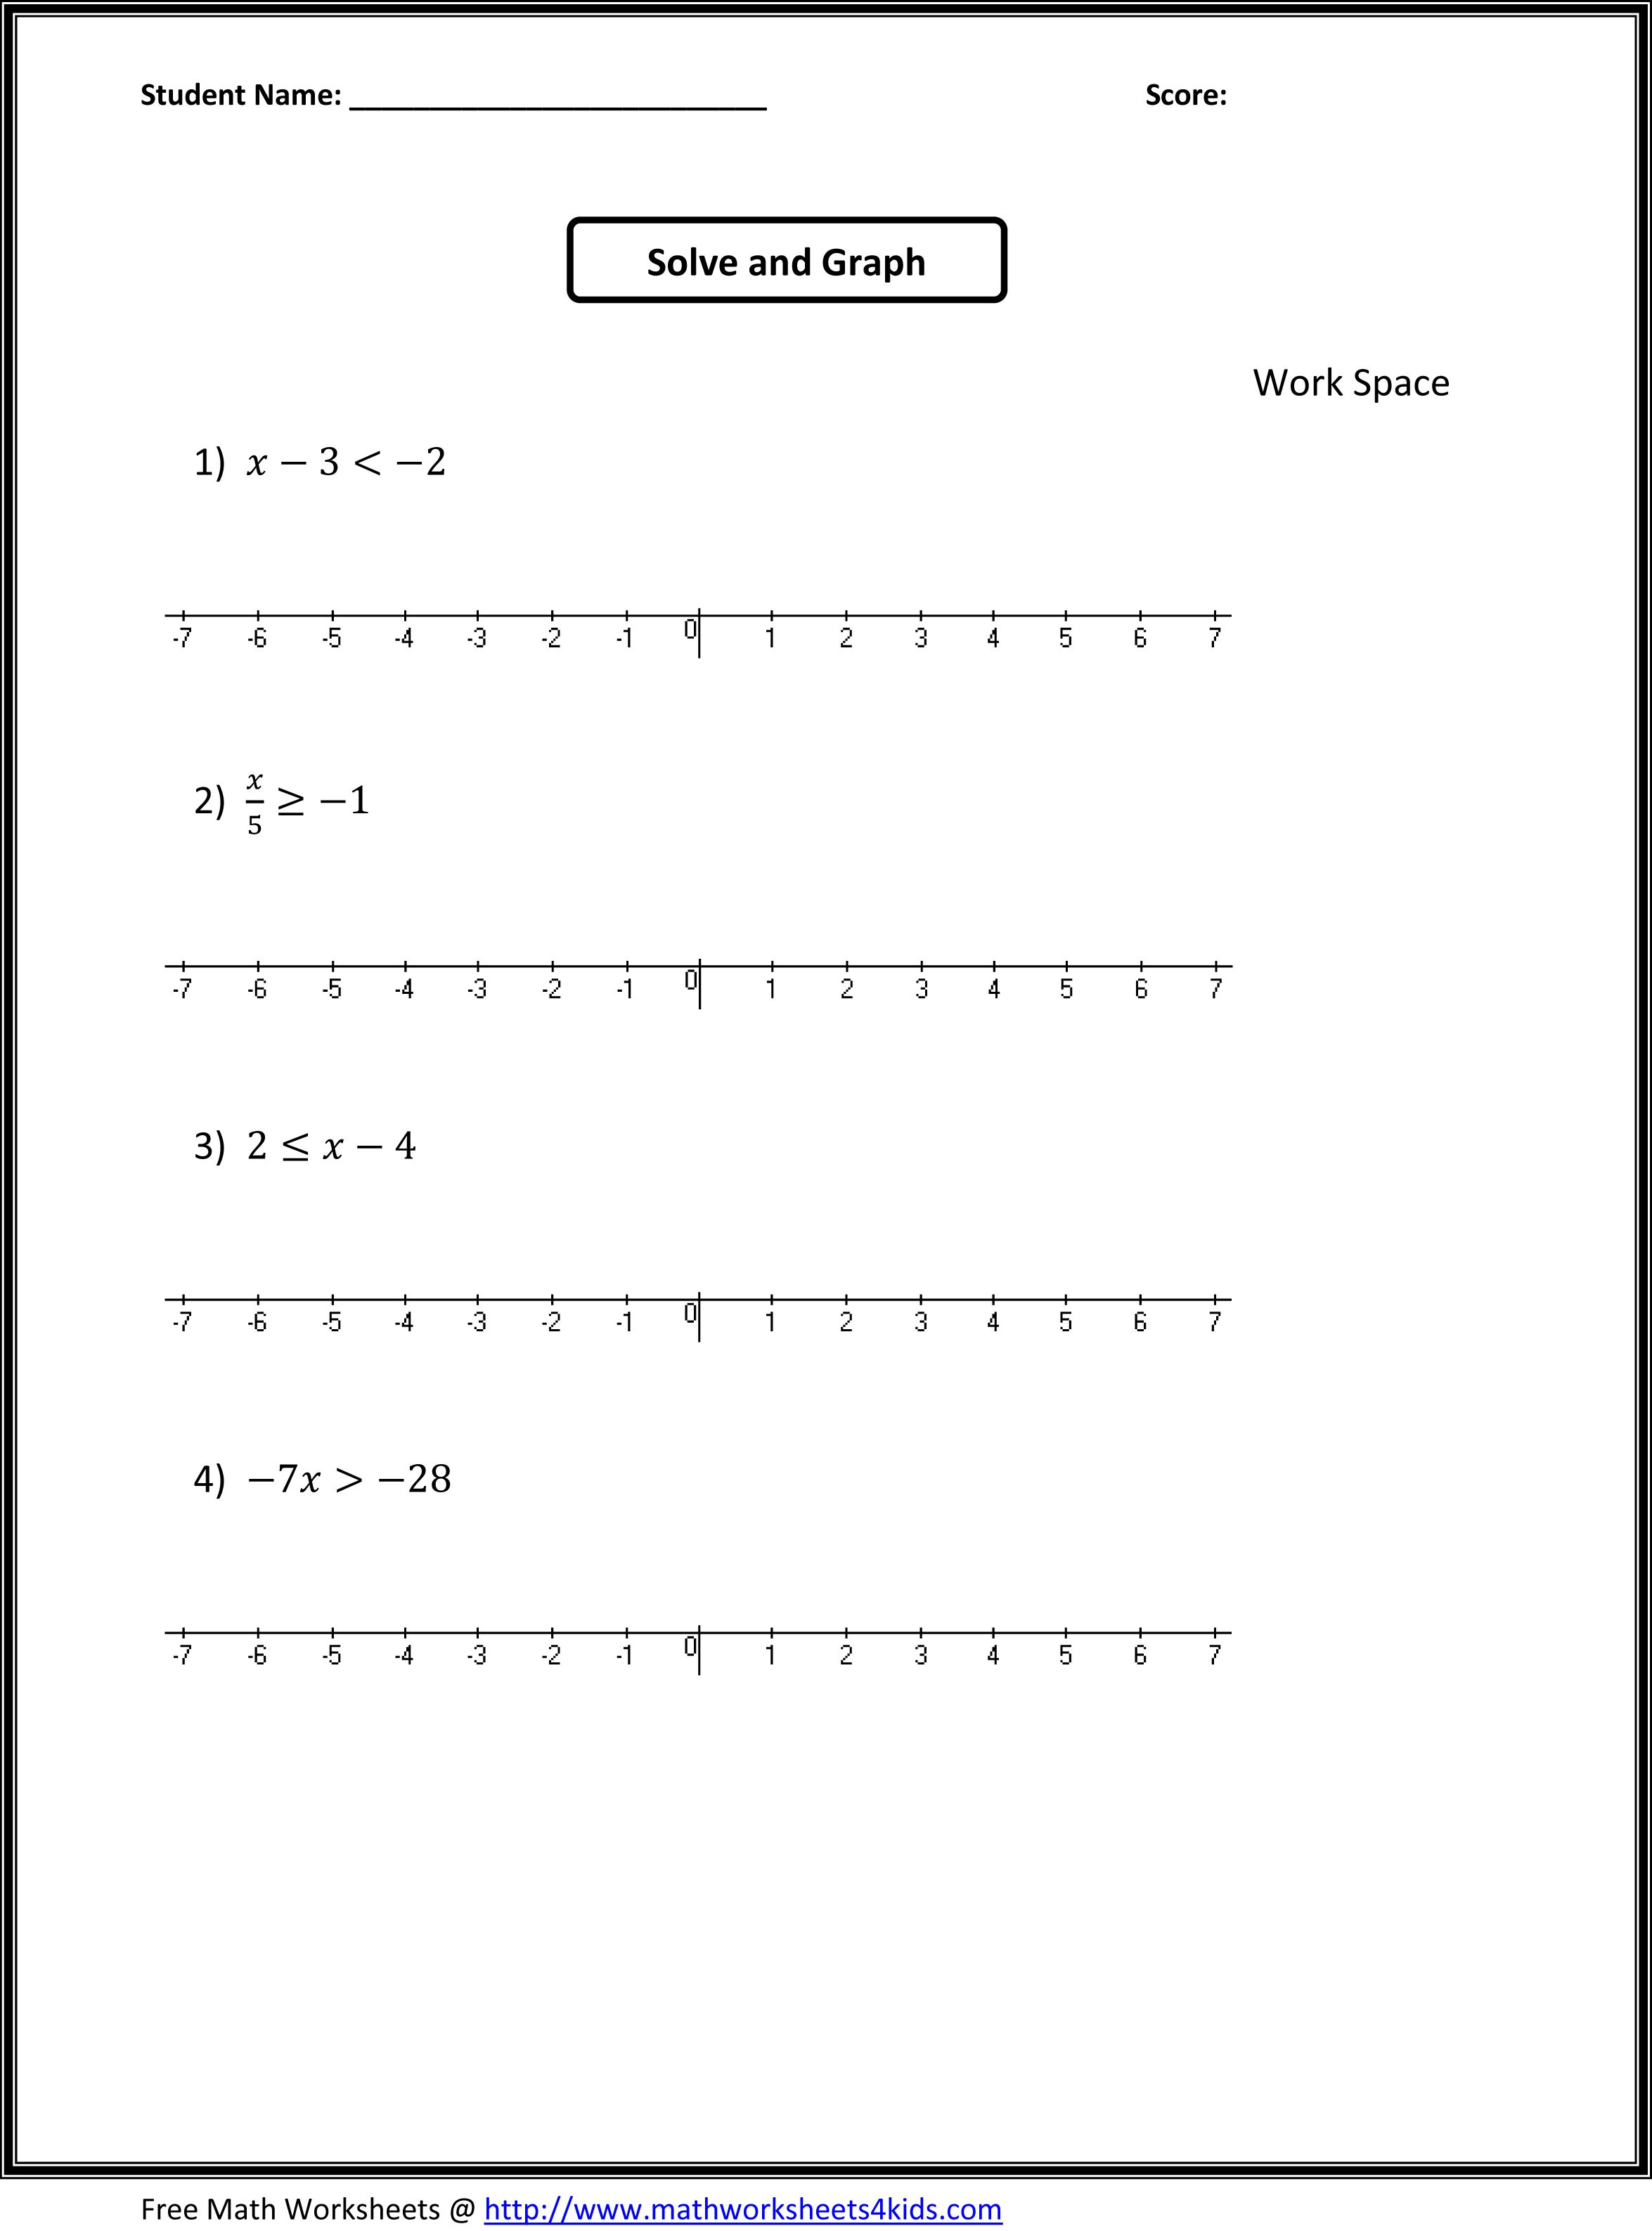 Worksheets 7th Grade Math Worksheets 7th grade math worksheets value absolute algebra worksheets